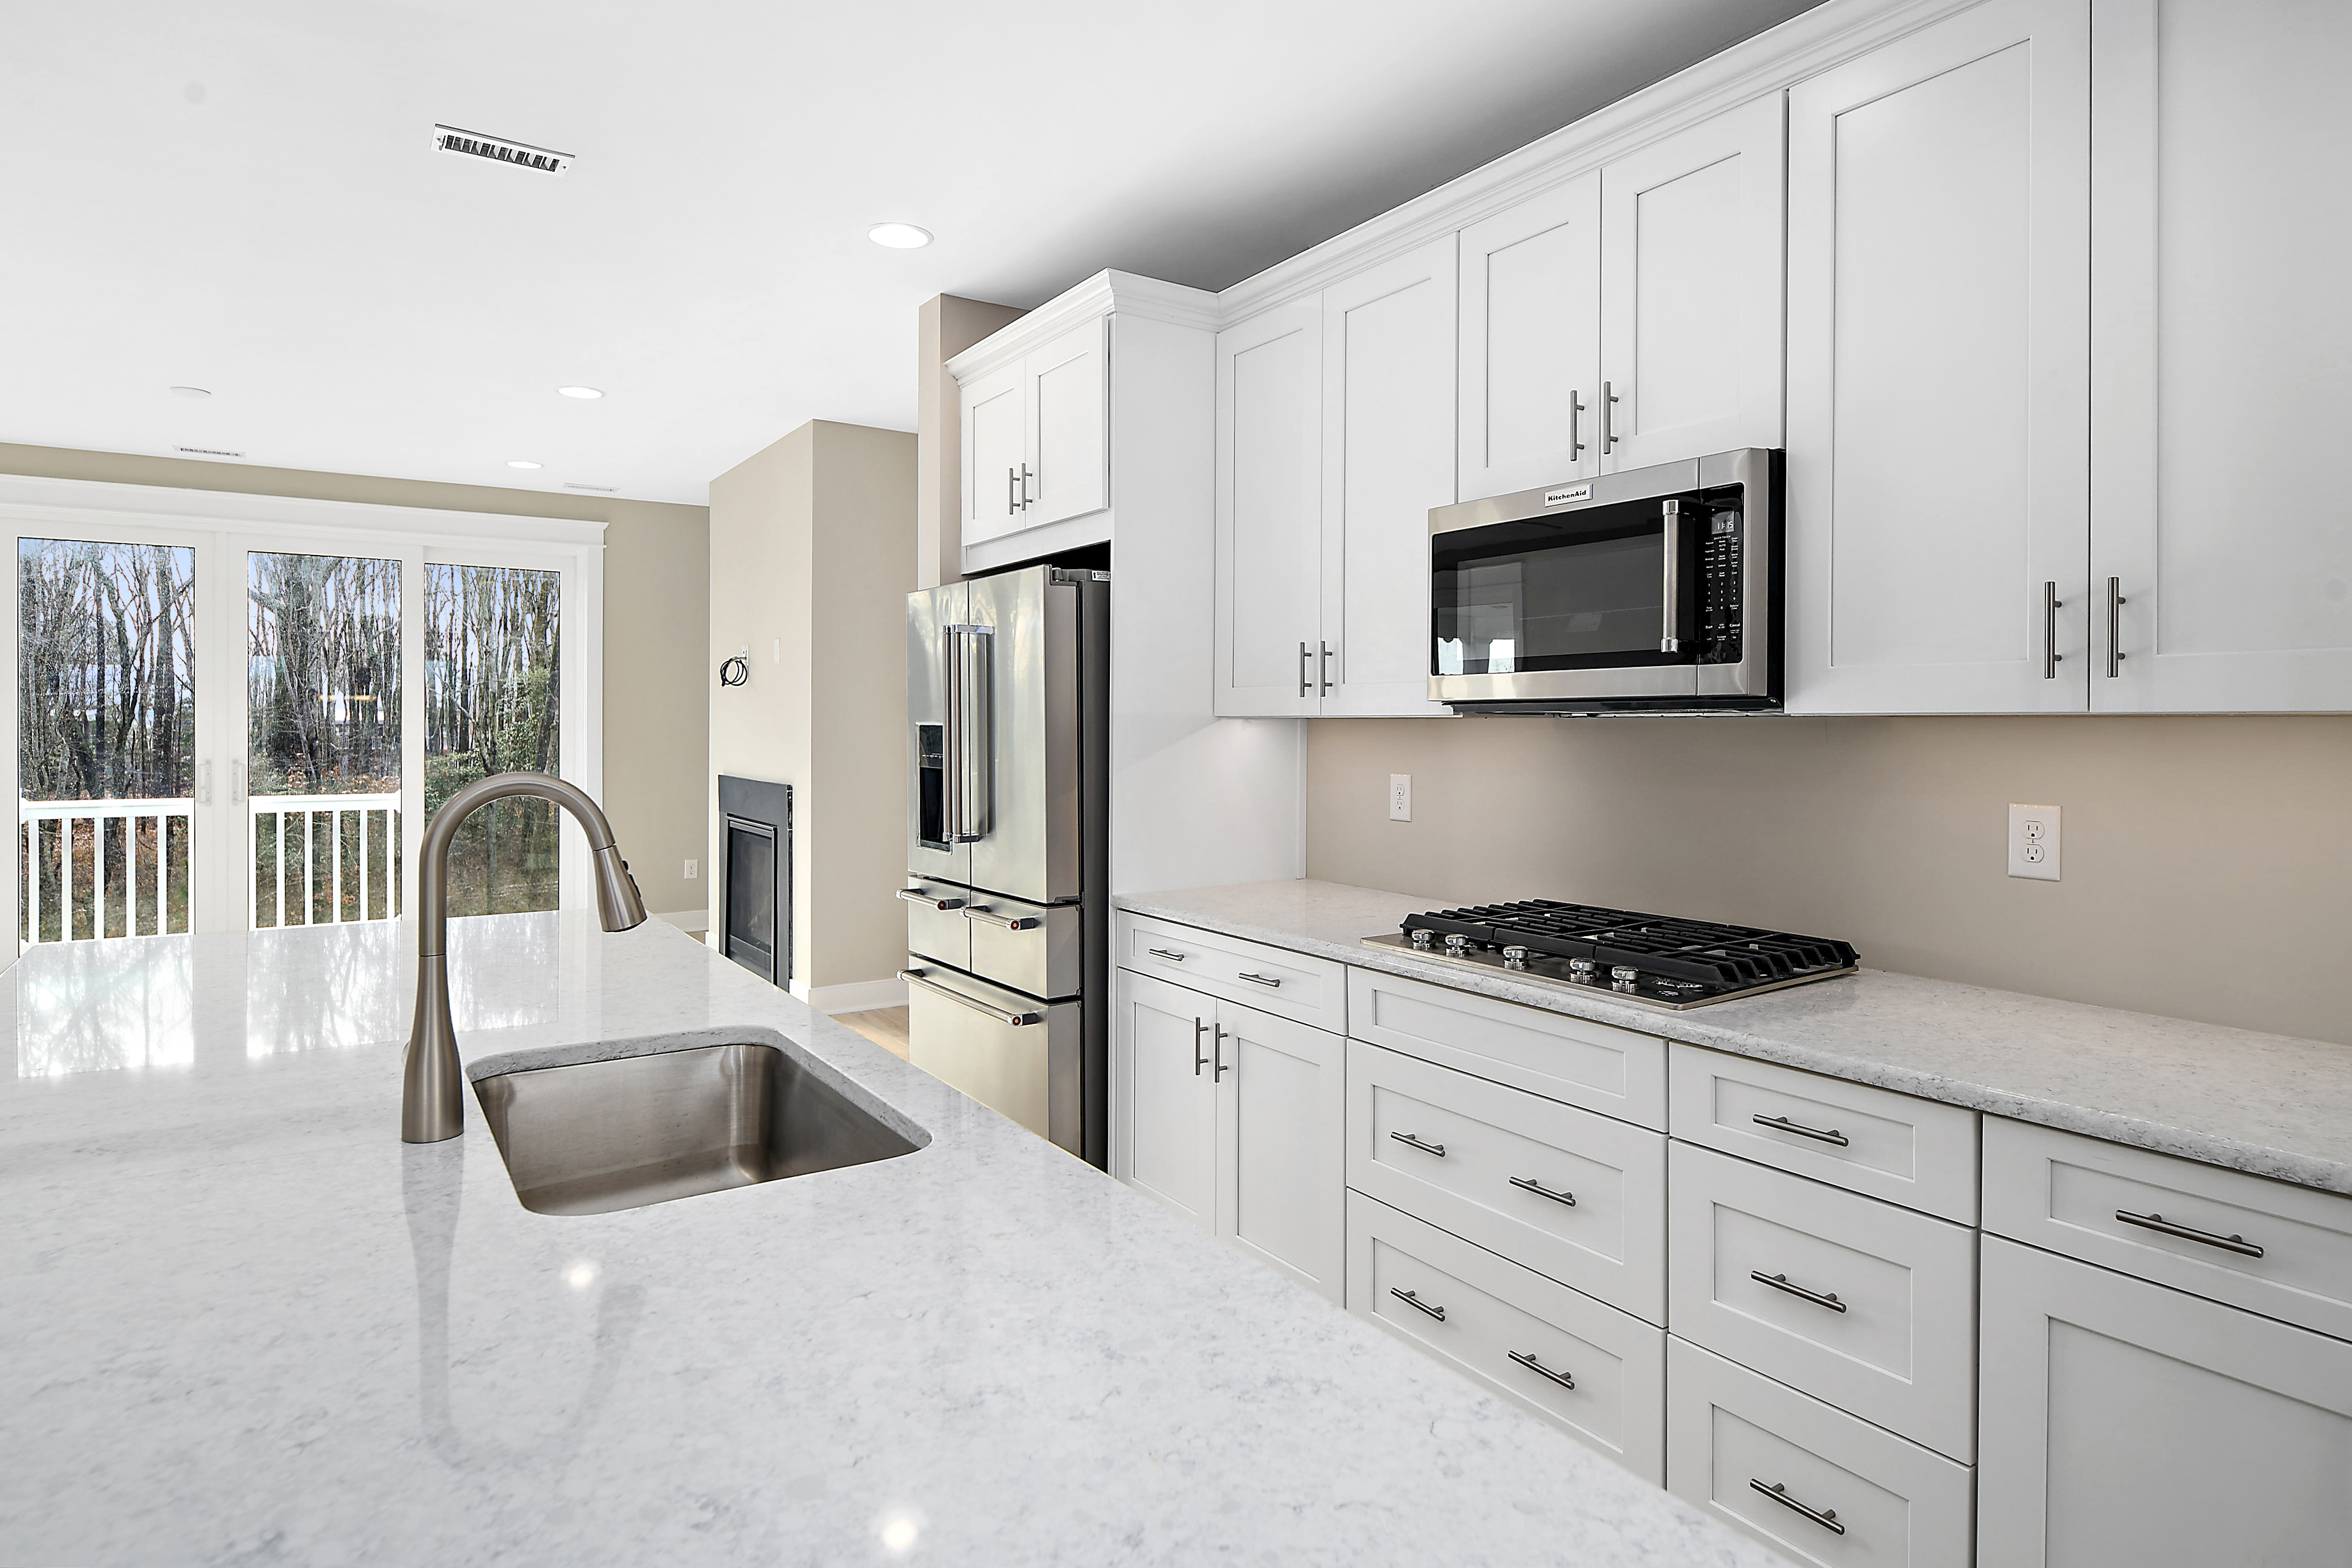 Gourmet Kitchen White Cabinets, Quartz Counters, and Stainless Steel Appliances